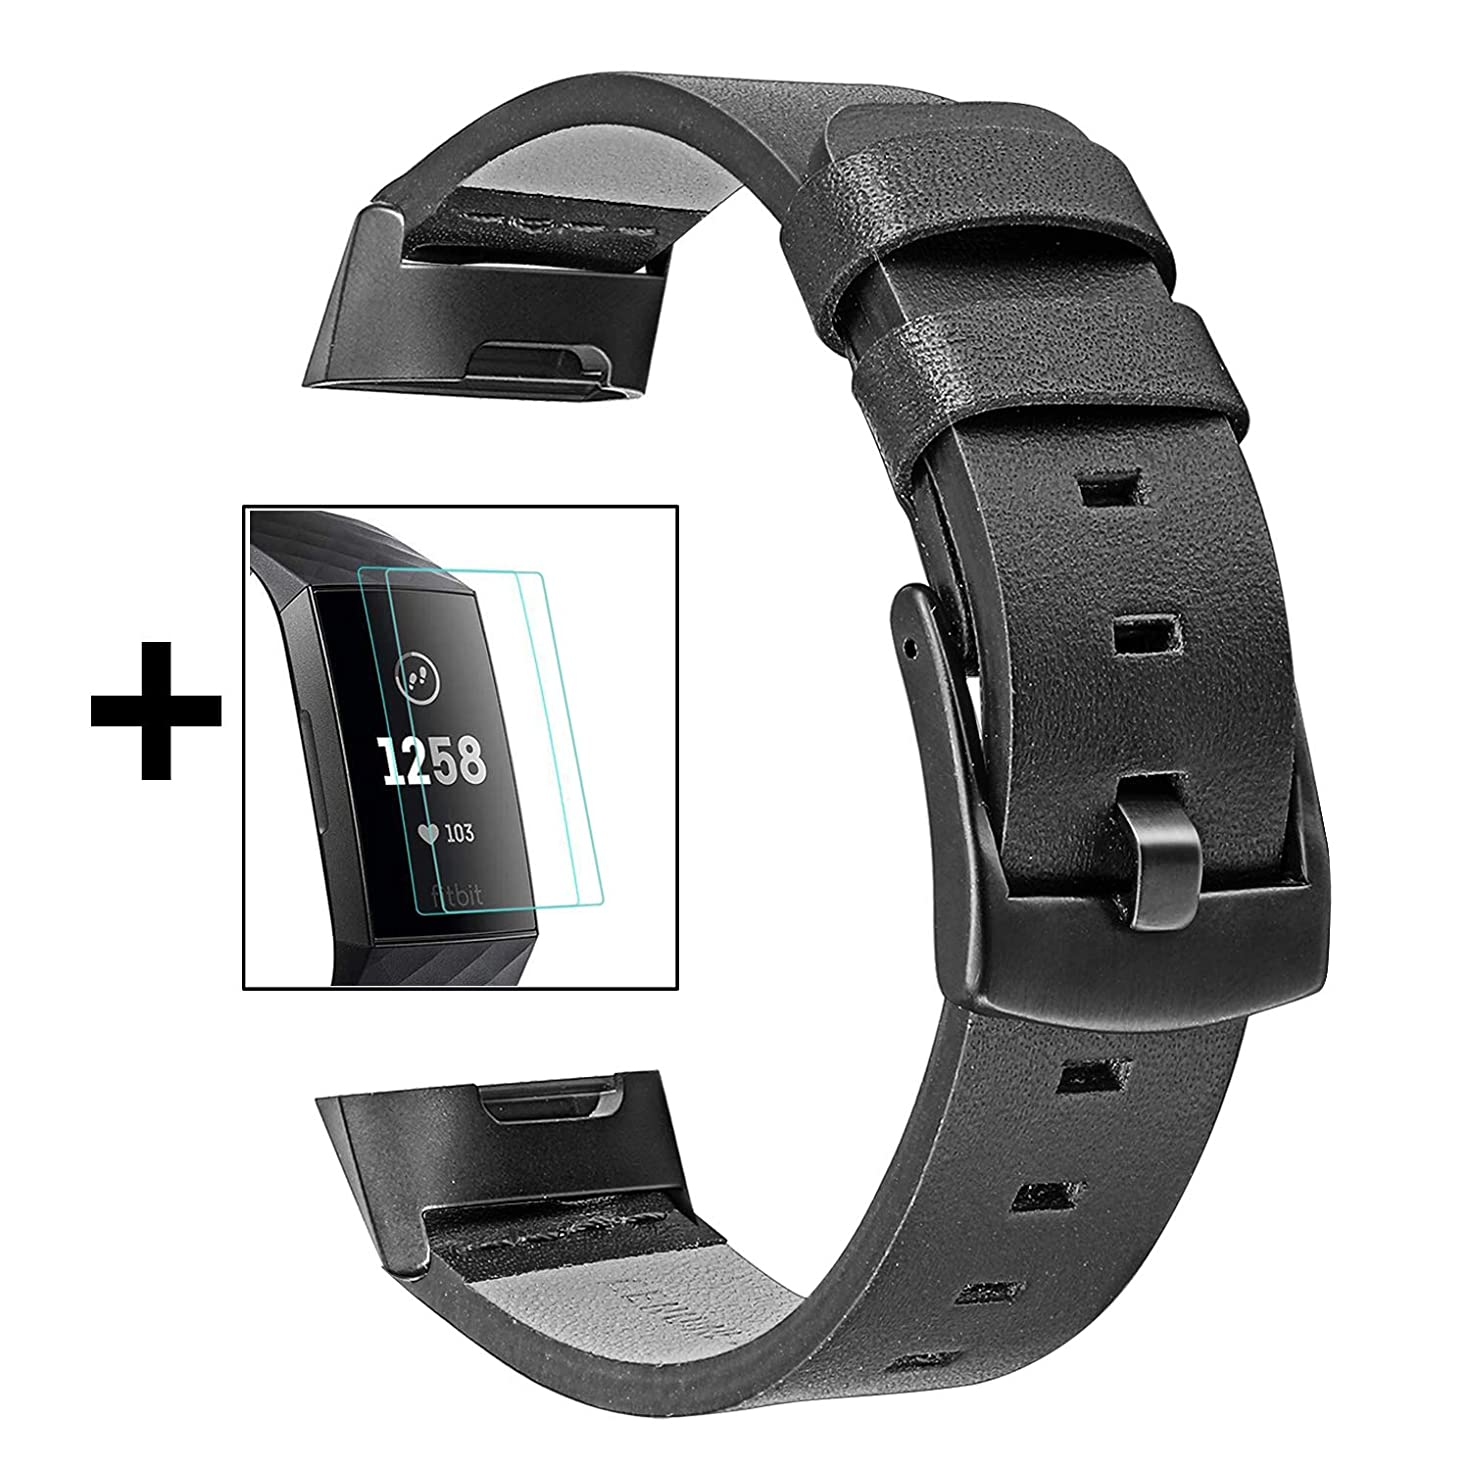 Charge 3 Watchband + 2 TPU Screen Protector Kit, TRUMiRR Genuine Leather Watch Band Sports Strap Stainless Steel Clasp Wristband for Fitbit Charge 3 & Charge 3 SE Men Women, Black